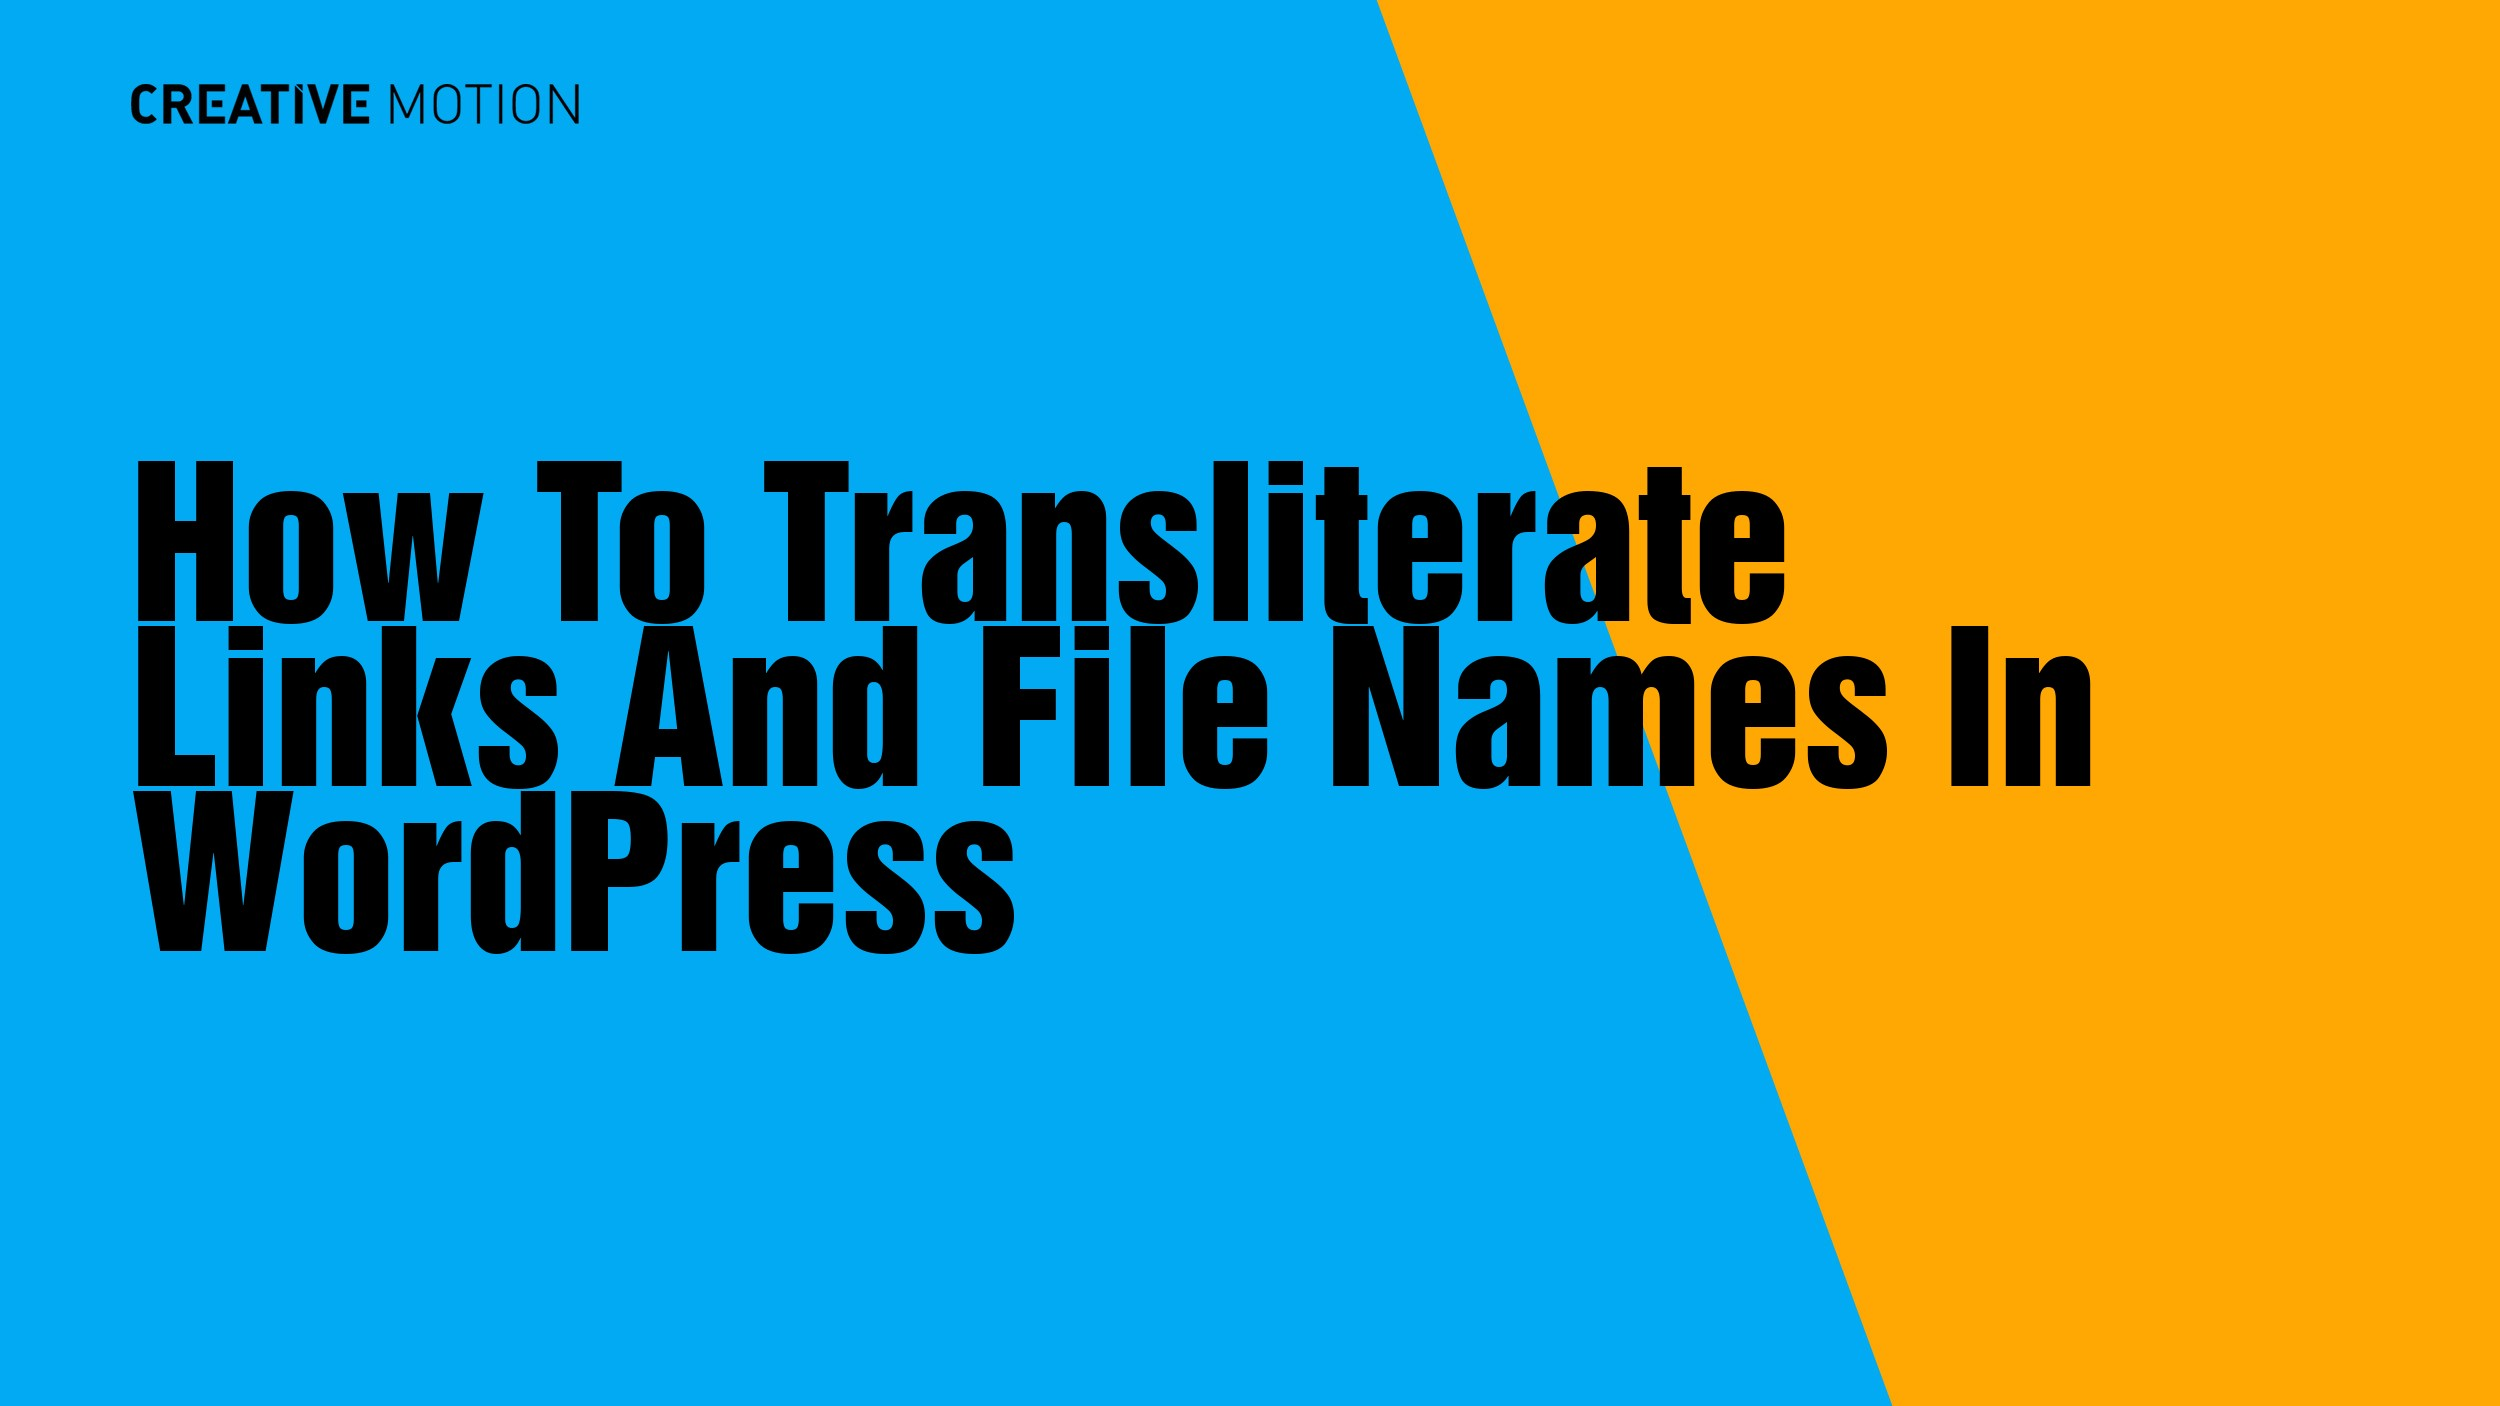 How To Transliterate Links And File Names In WordPress